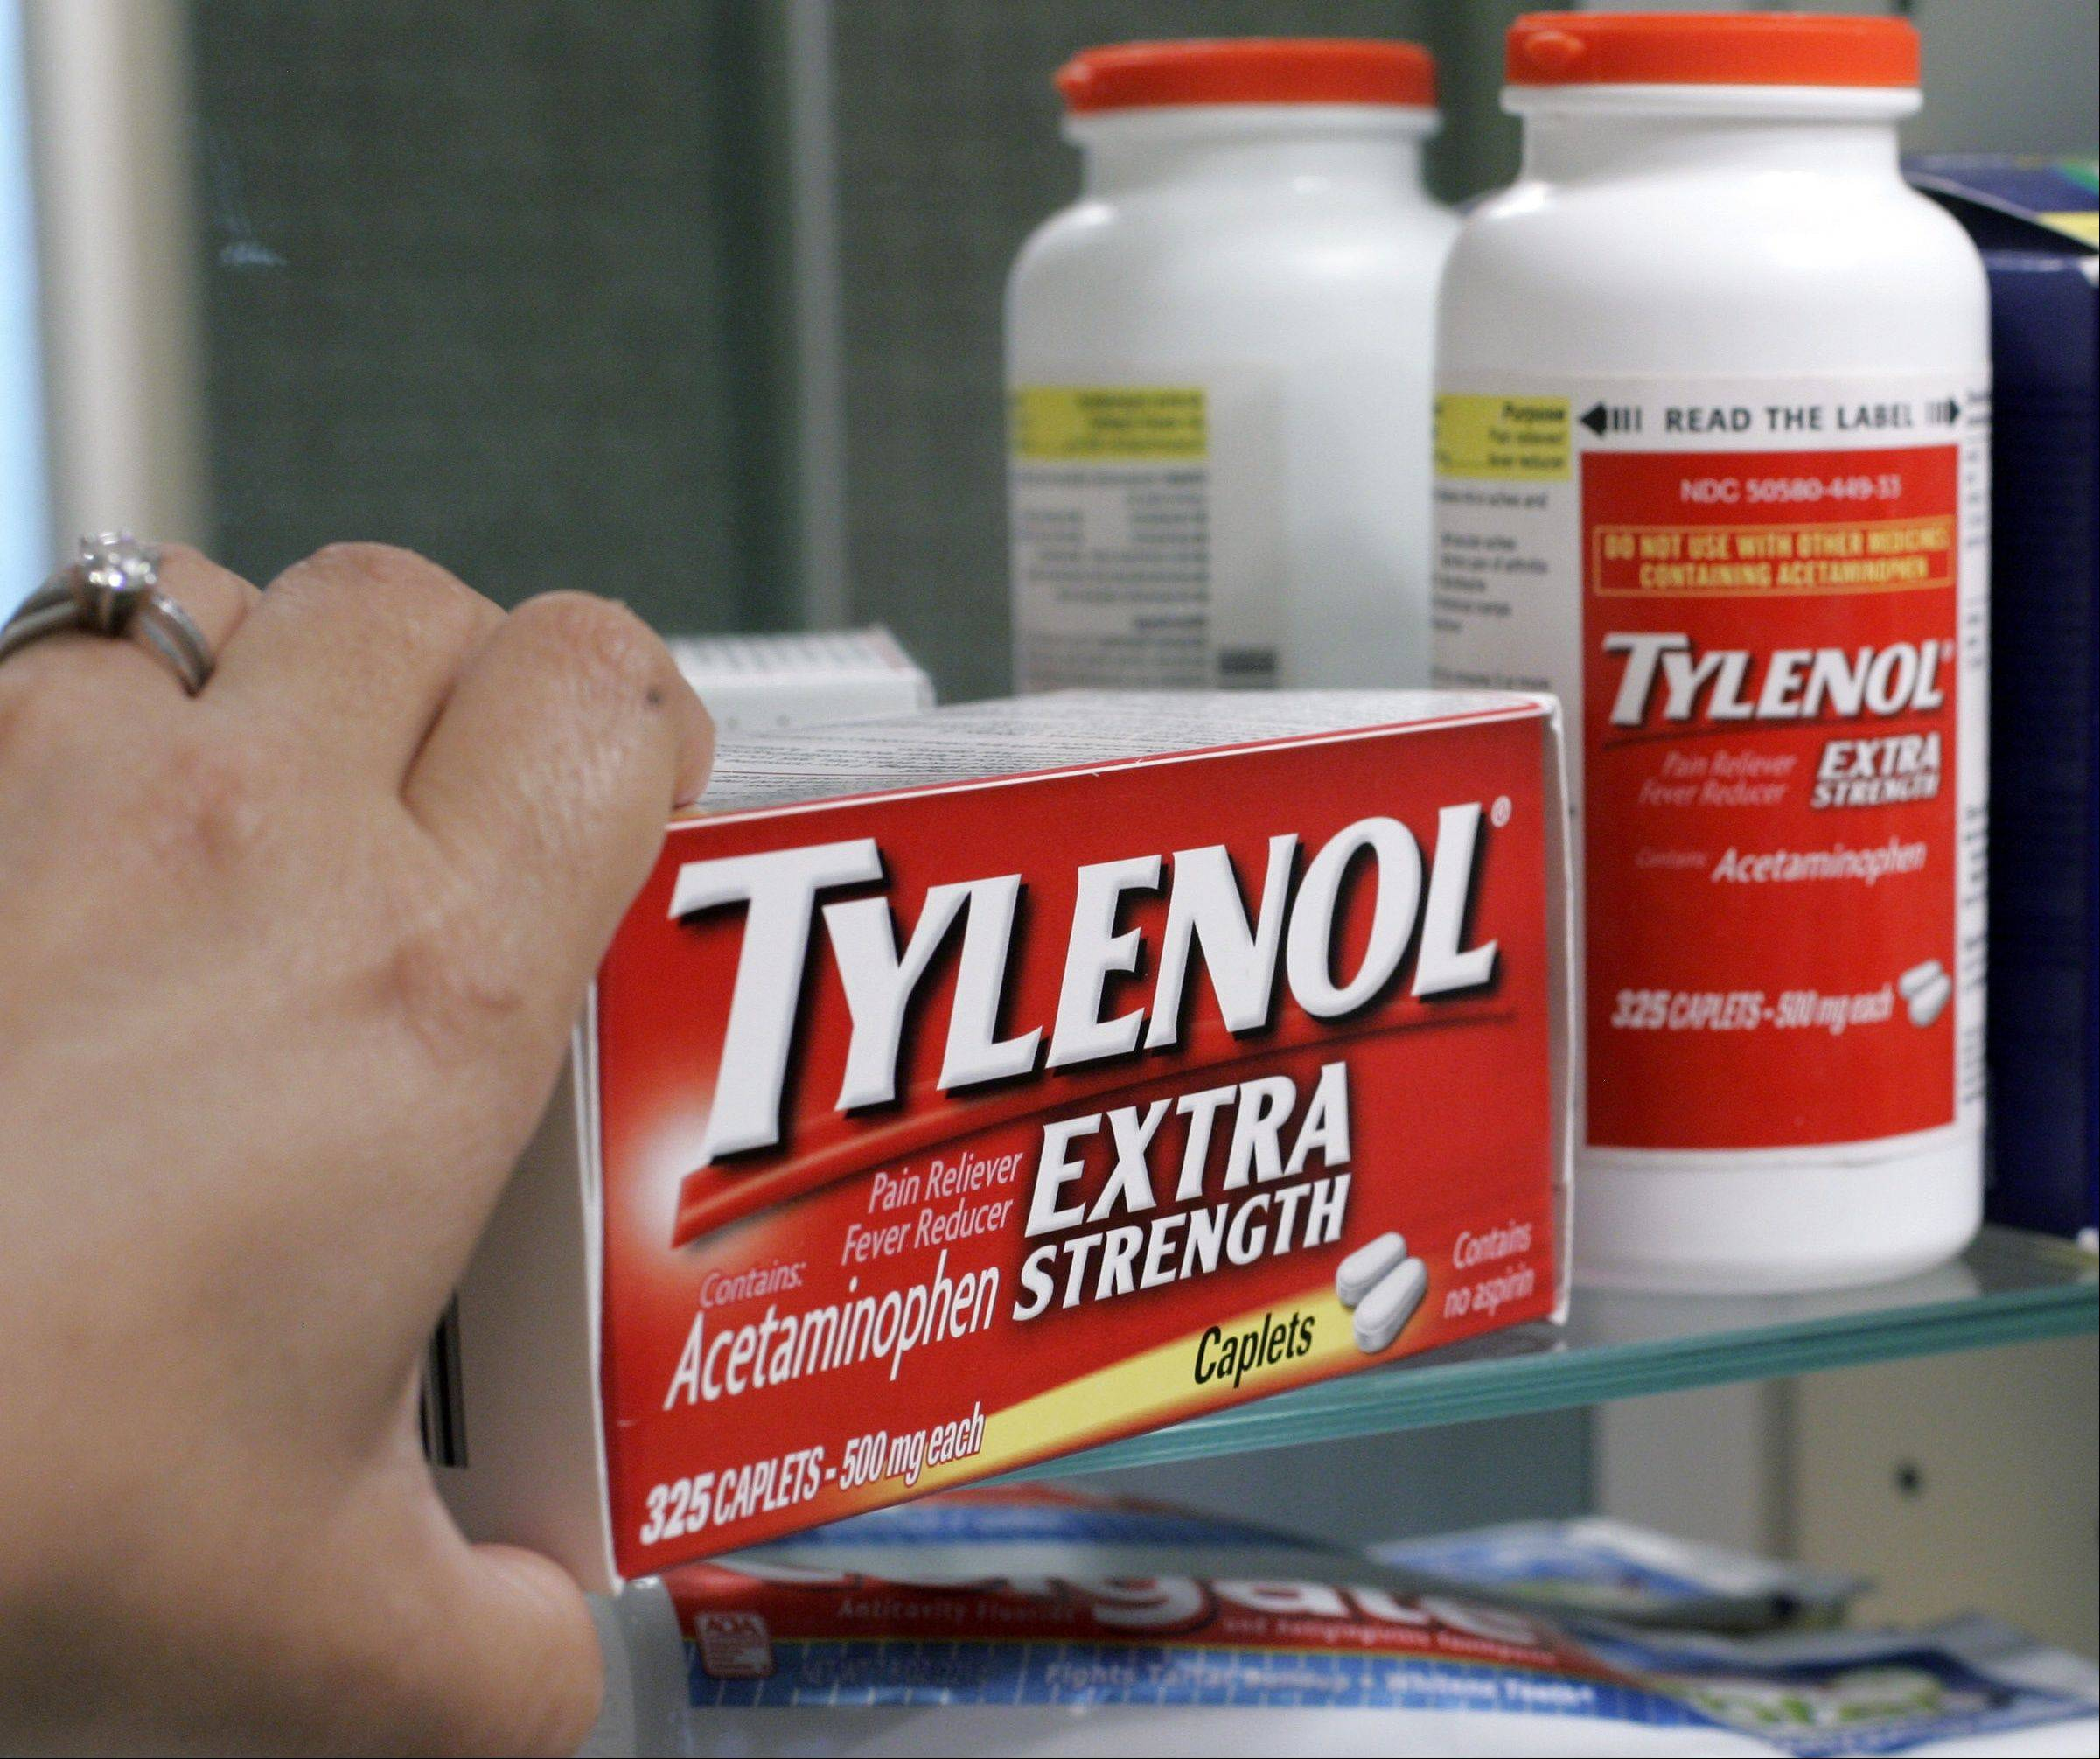 The FBI wants to compare the DNA of Theodore Kaczynski, the so-called Unabomber, to evidence in the 1982 Tylenol poisonings.